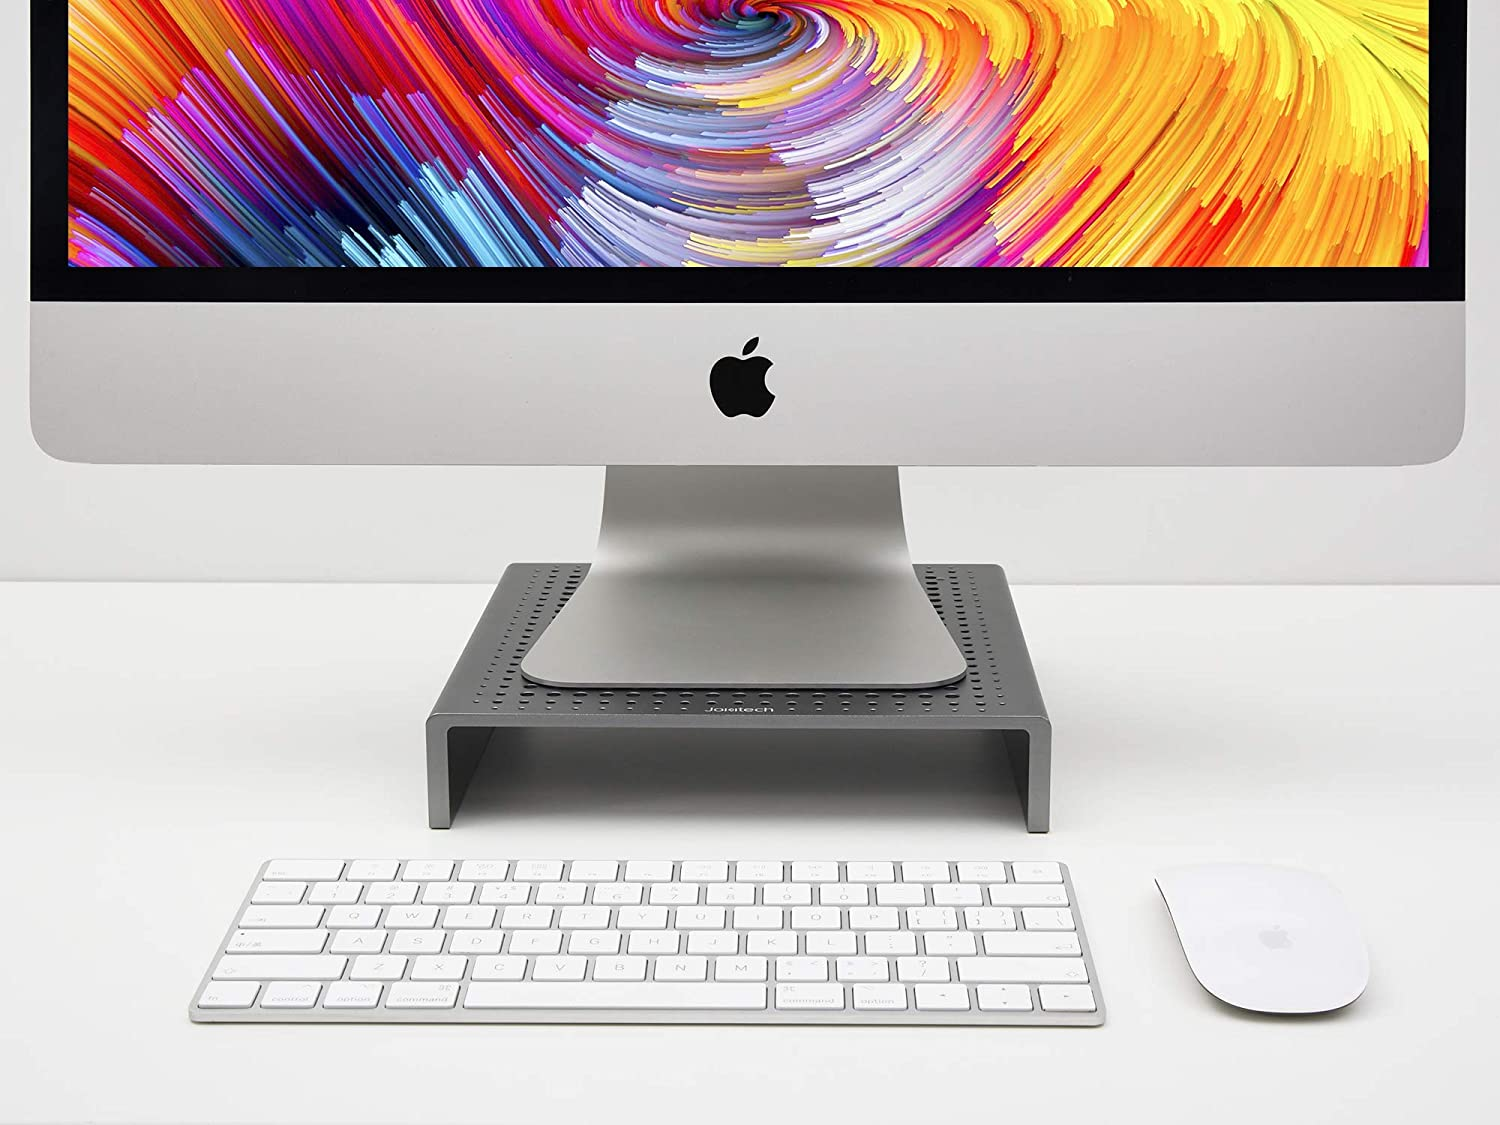 JOKItech Computer Monitor Screen Stand Riser Compatible with New Apple iMac Pro Samsung LG Ultrafine HP Dell Asus and Dell Alienware -Spacegrey